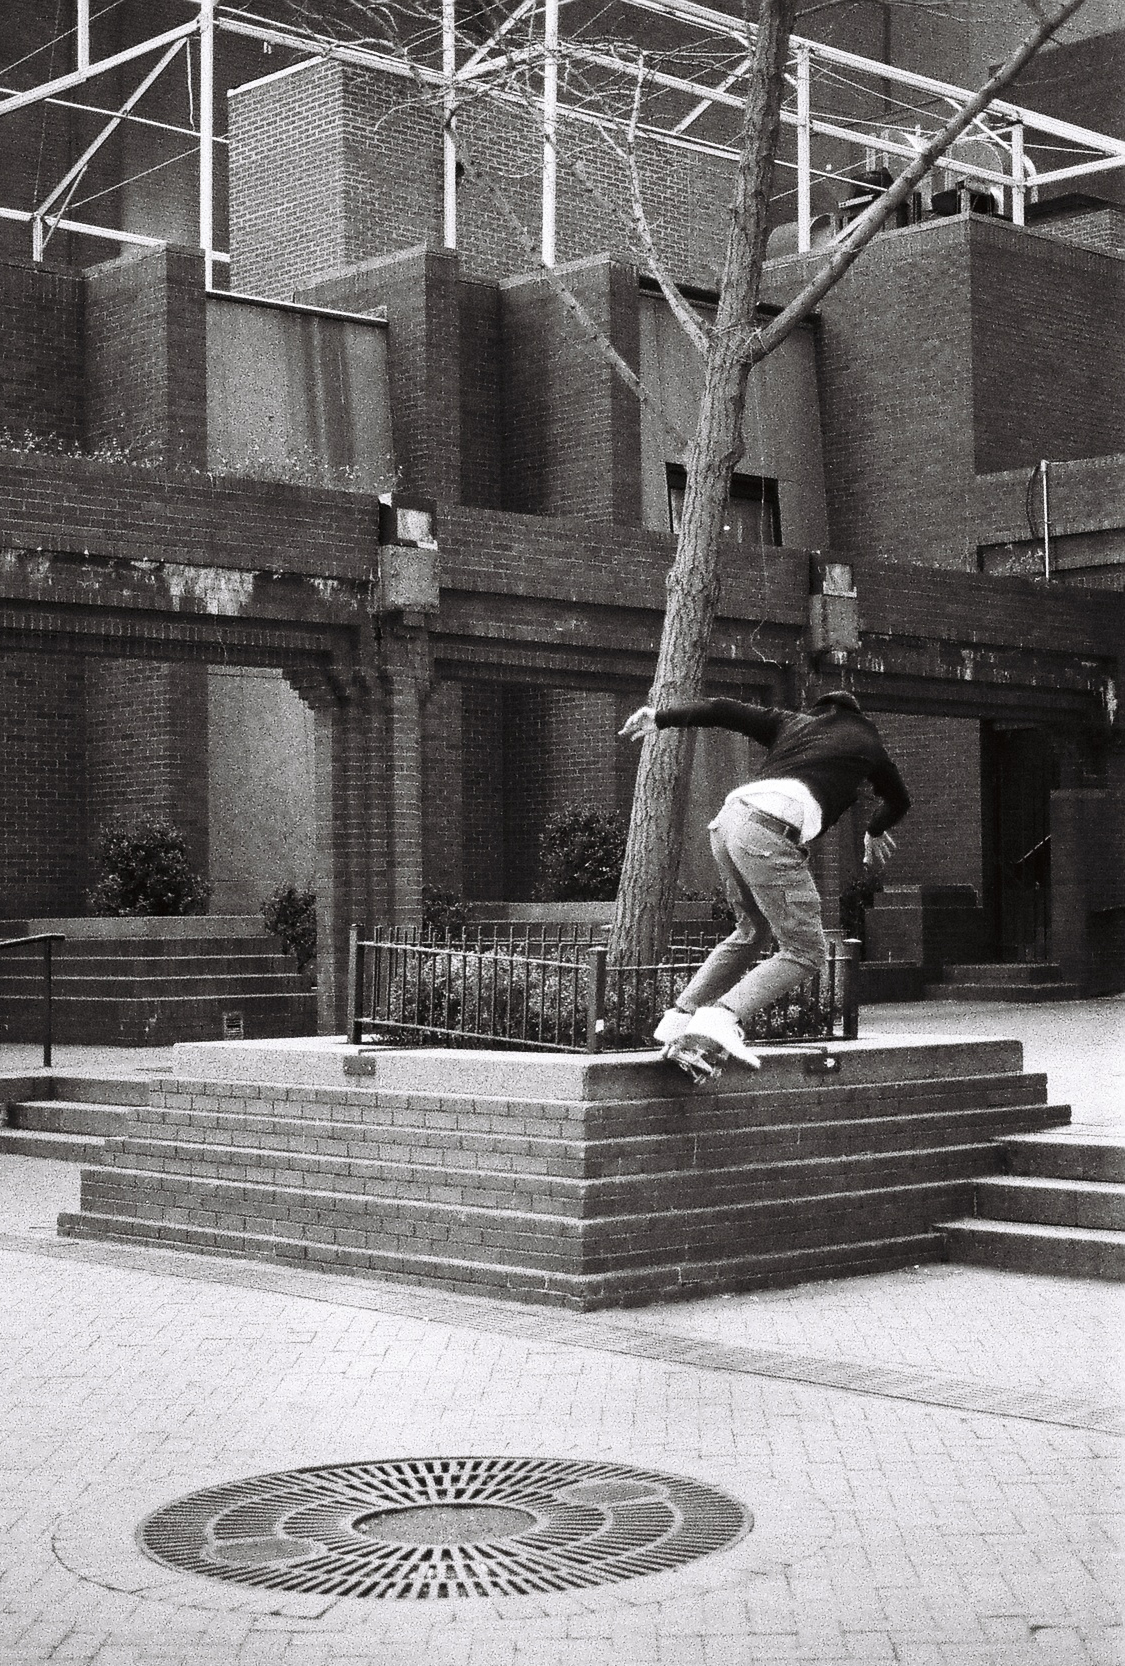 Steve Botsford - Gap out to 180 nosegrind.